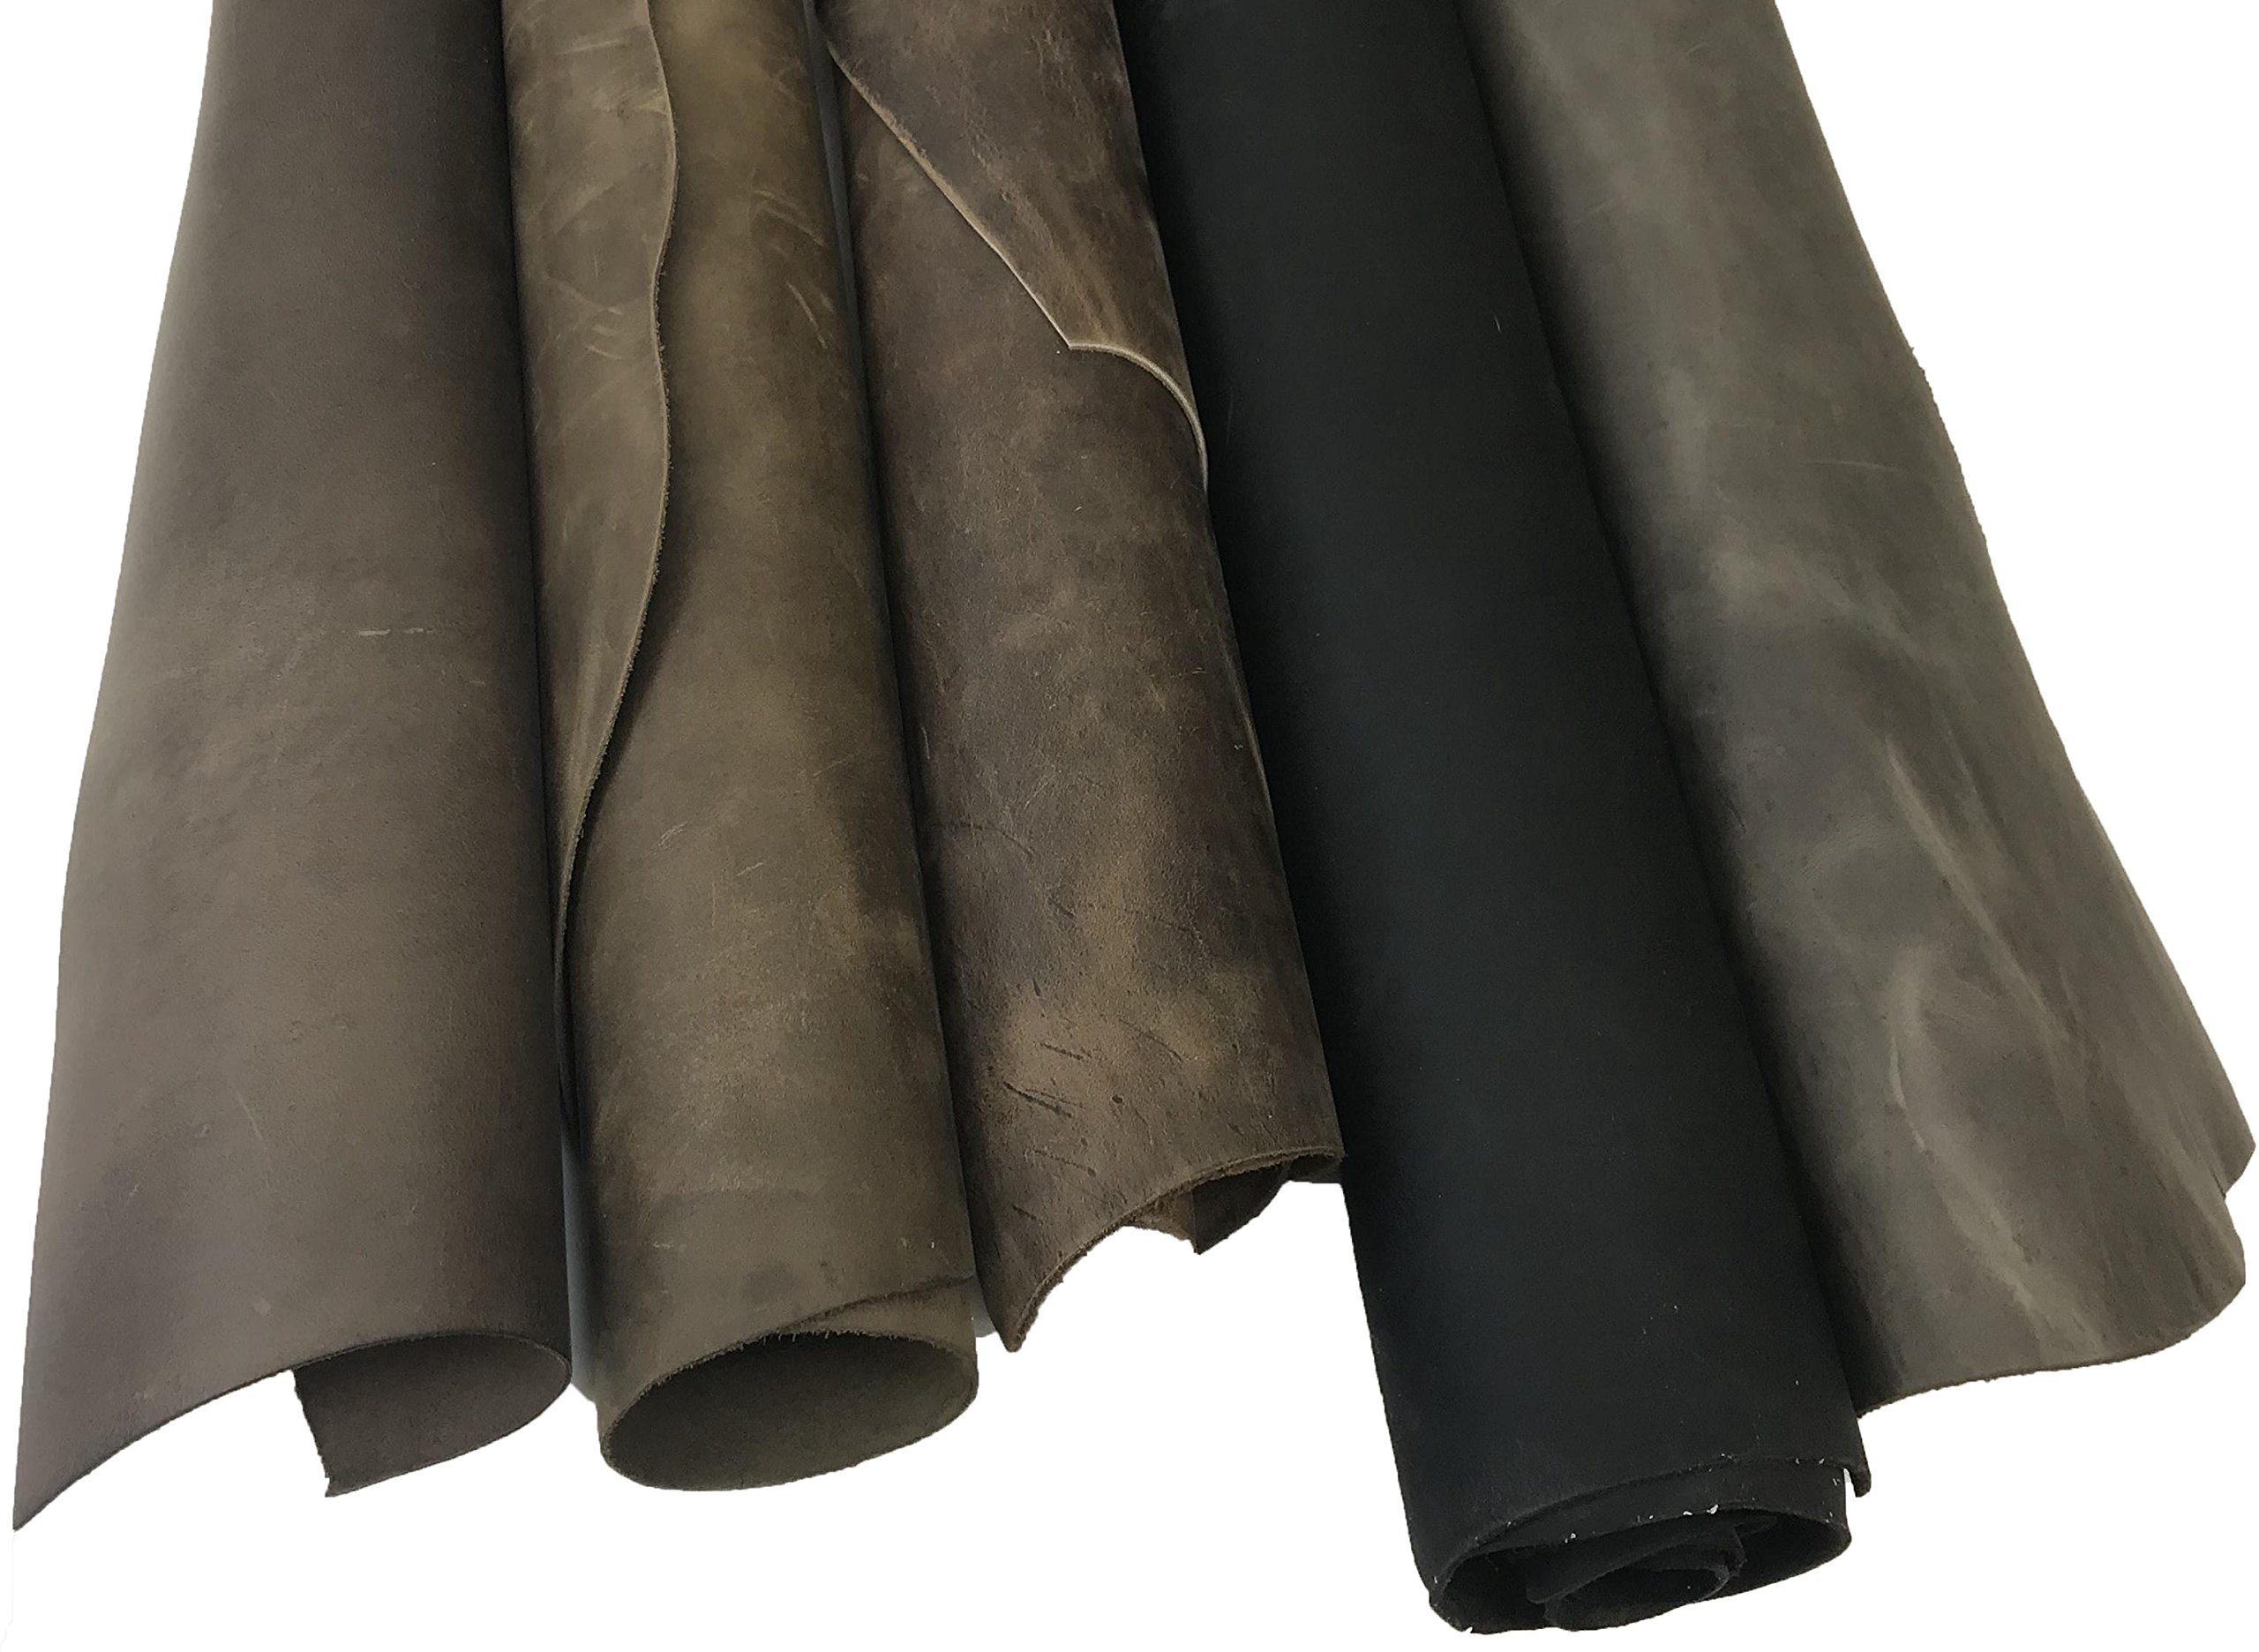 SLC's Assorted Oil Tan Leather Pieces 8-9sqft